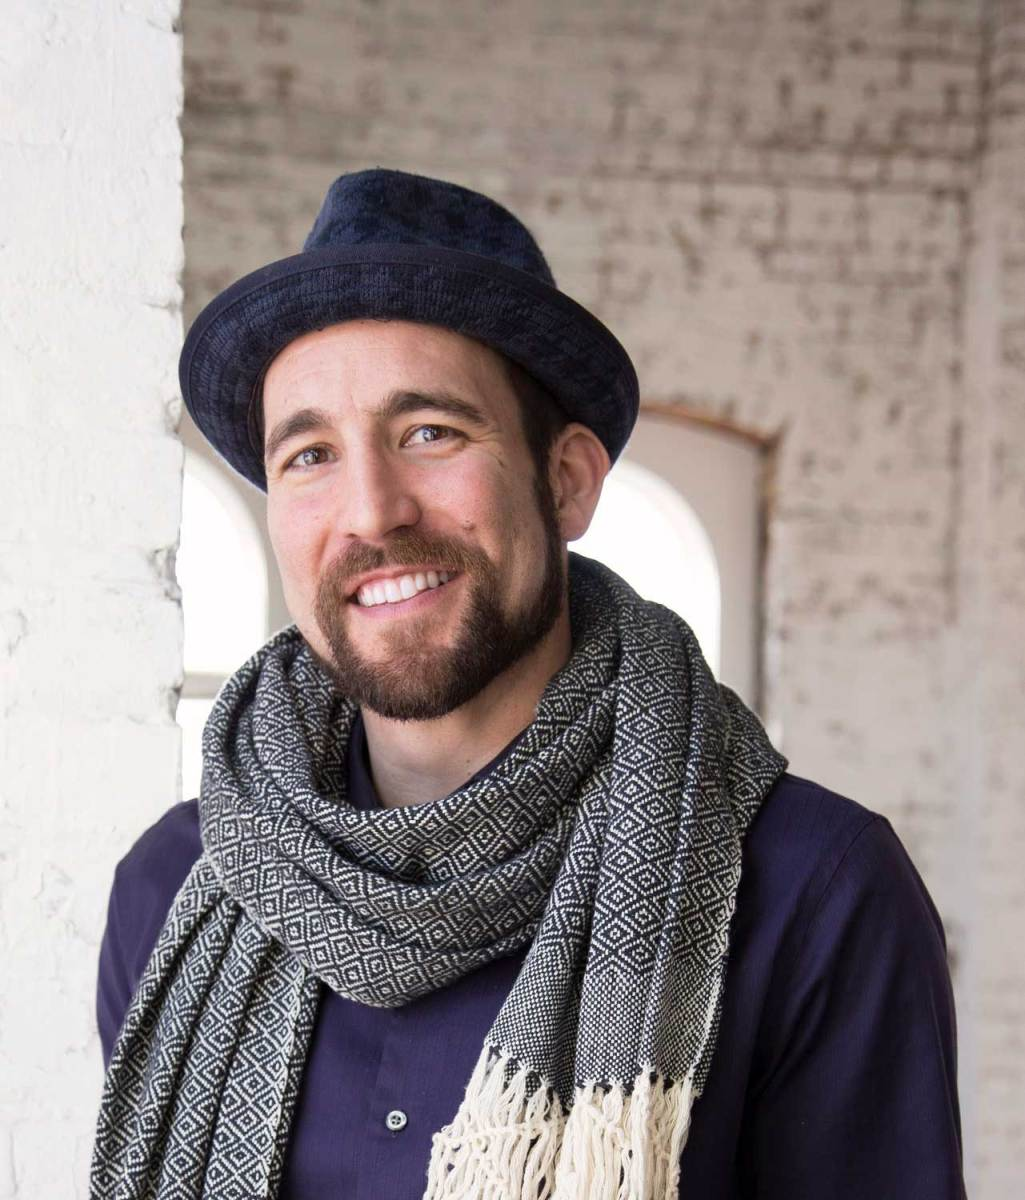 Photo of the artist Jacob Stanley in a cap and scarf